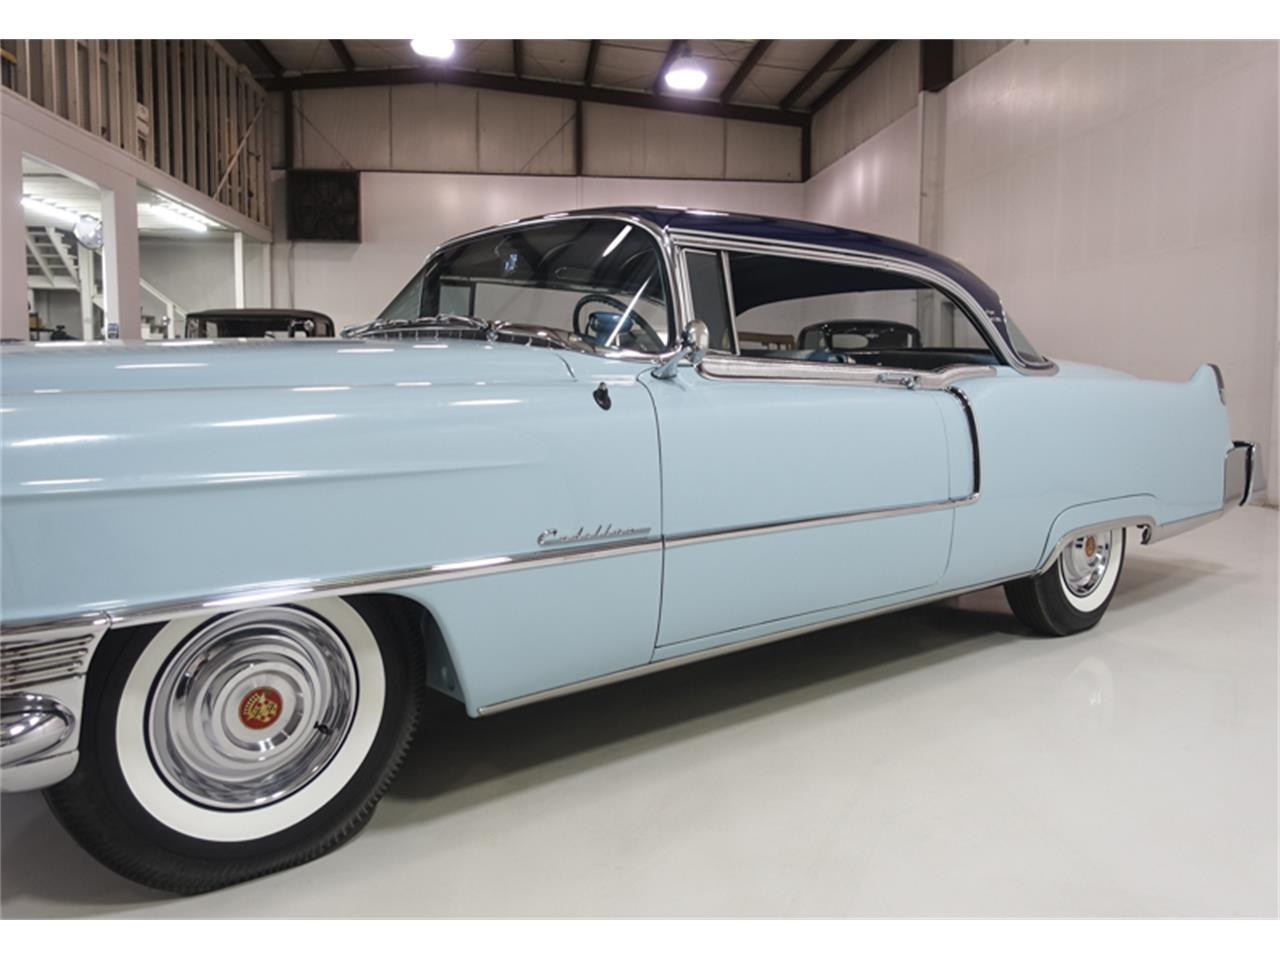 1955 Cadillac Coupe DeVille (CC-1310412) for sale in Saint Louis, Missouri